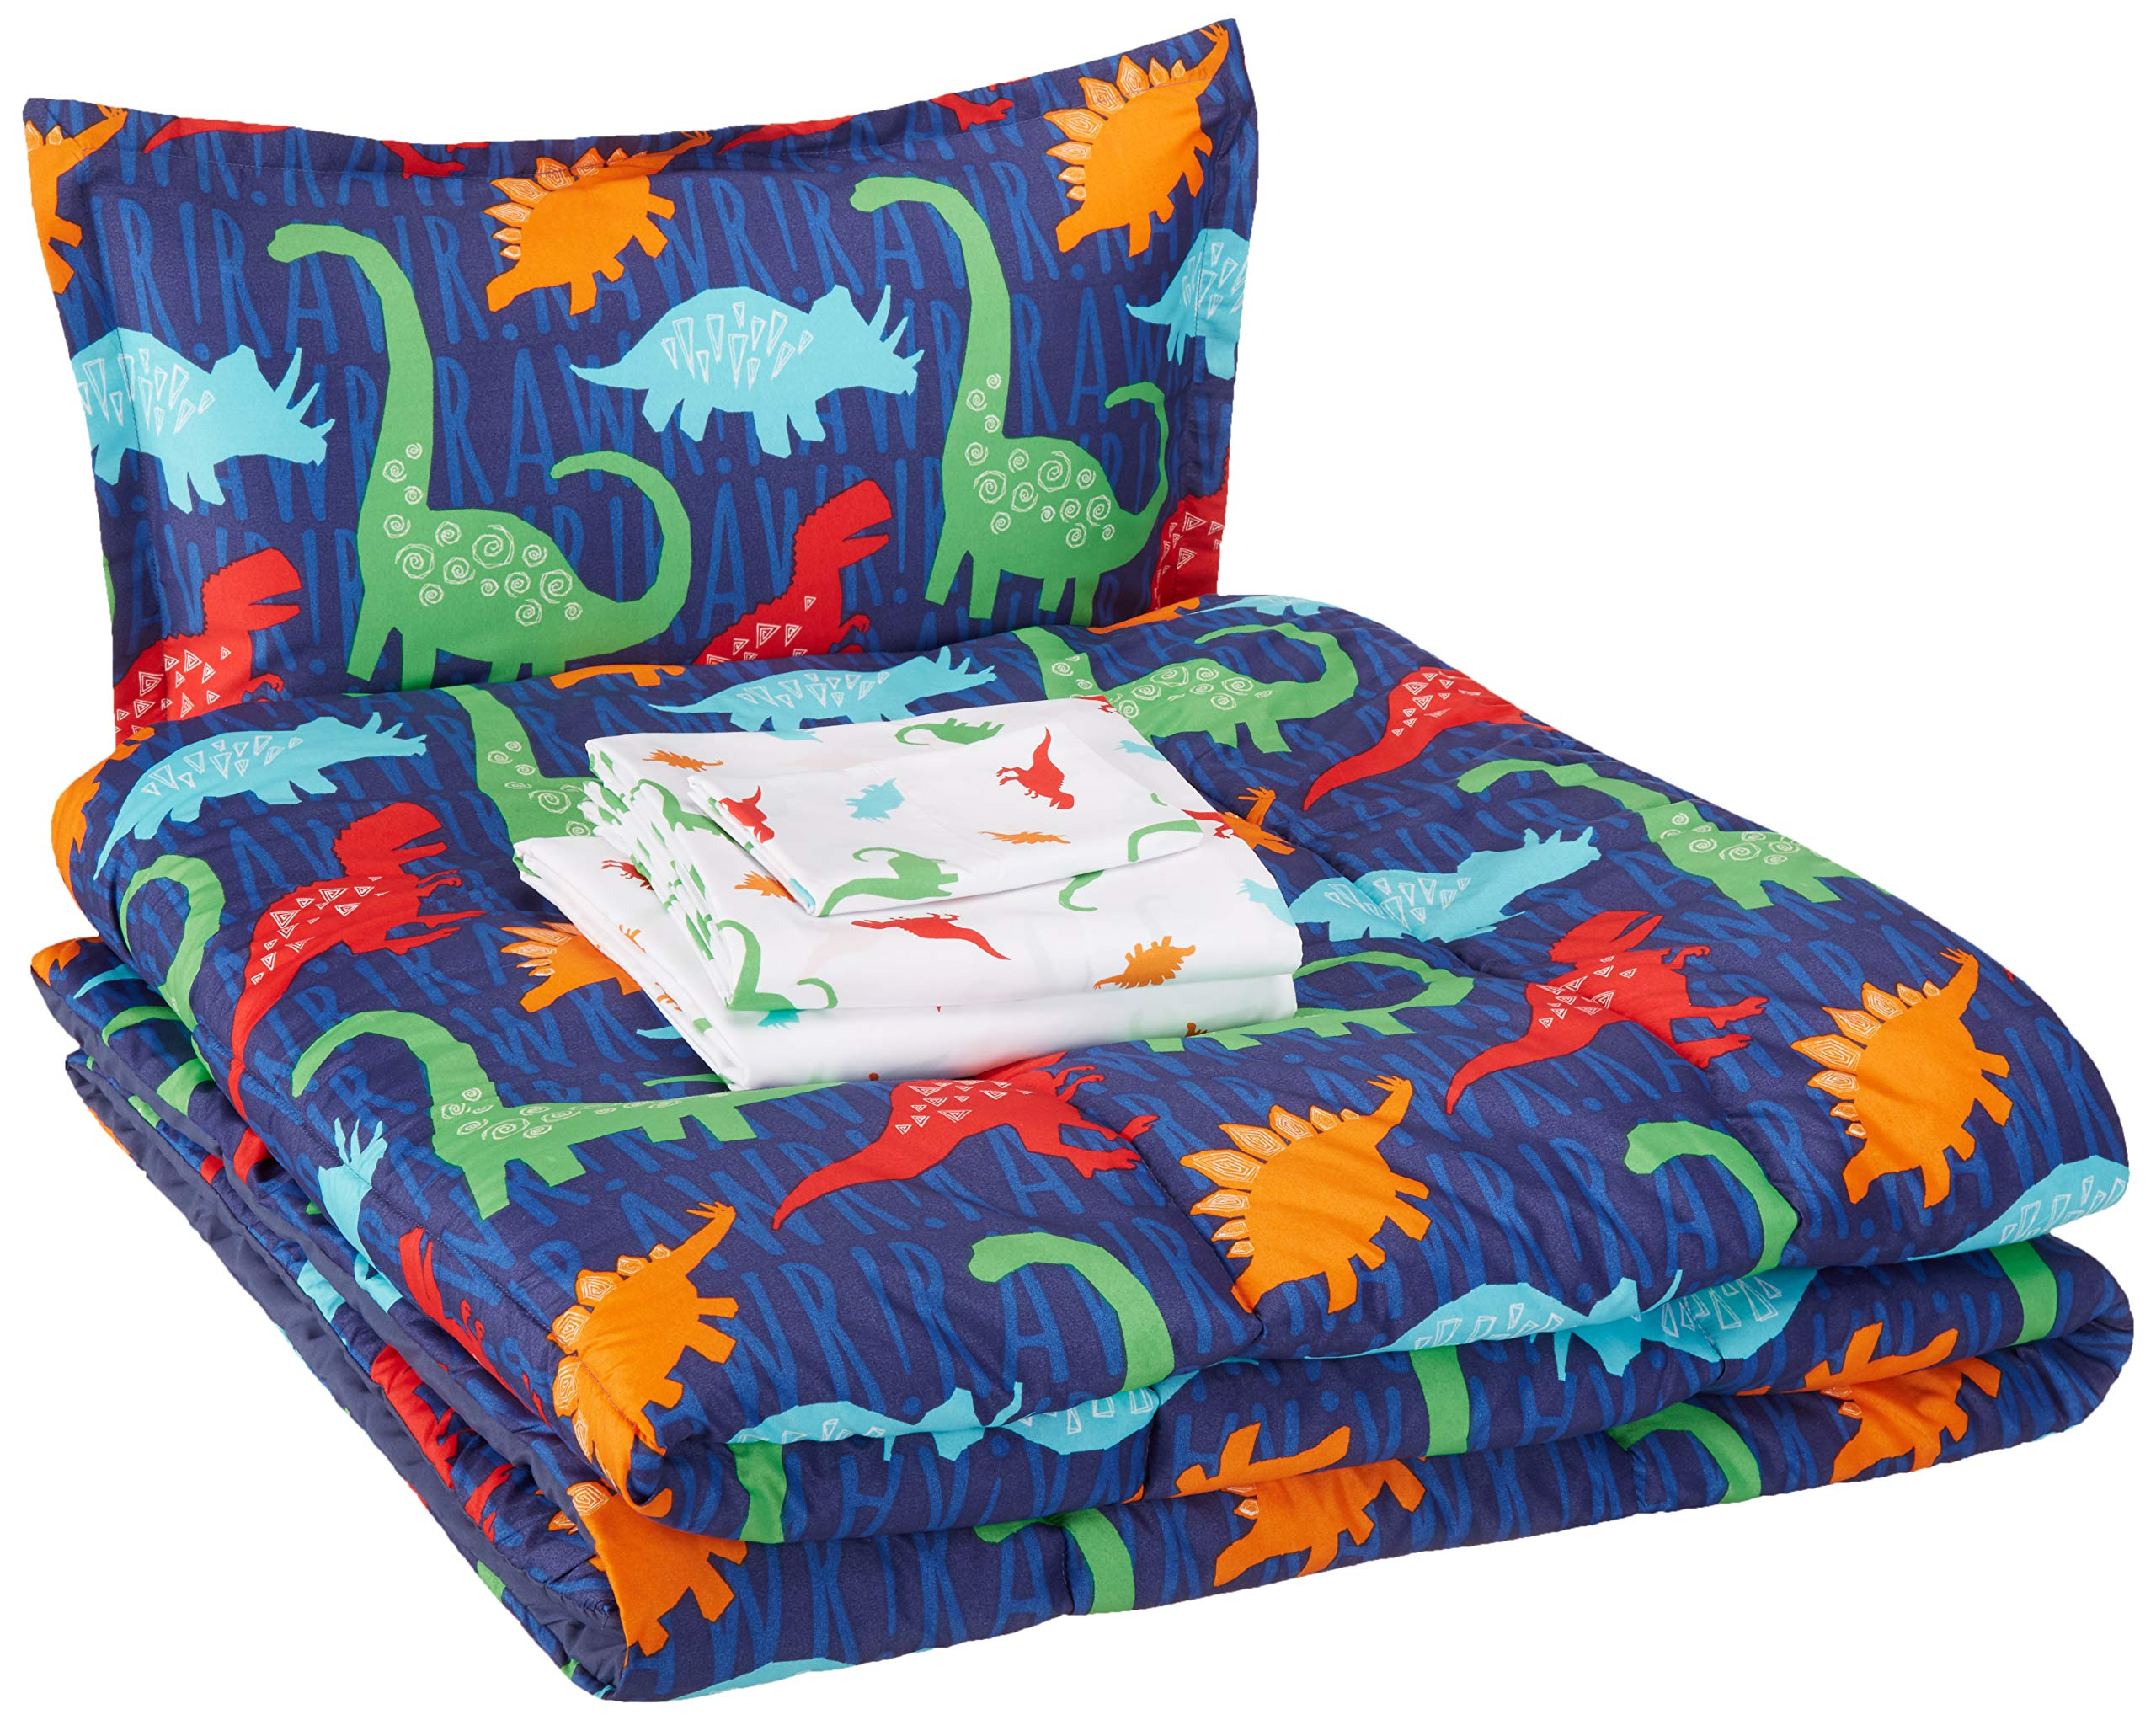 AmazonBasics Easy-Wash Microfiber Kid's Bed-in-a-Bag Bedding Set - Twin, Multi-Color Dinosaurs by AmazonBasics